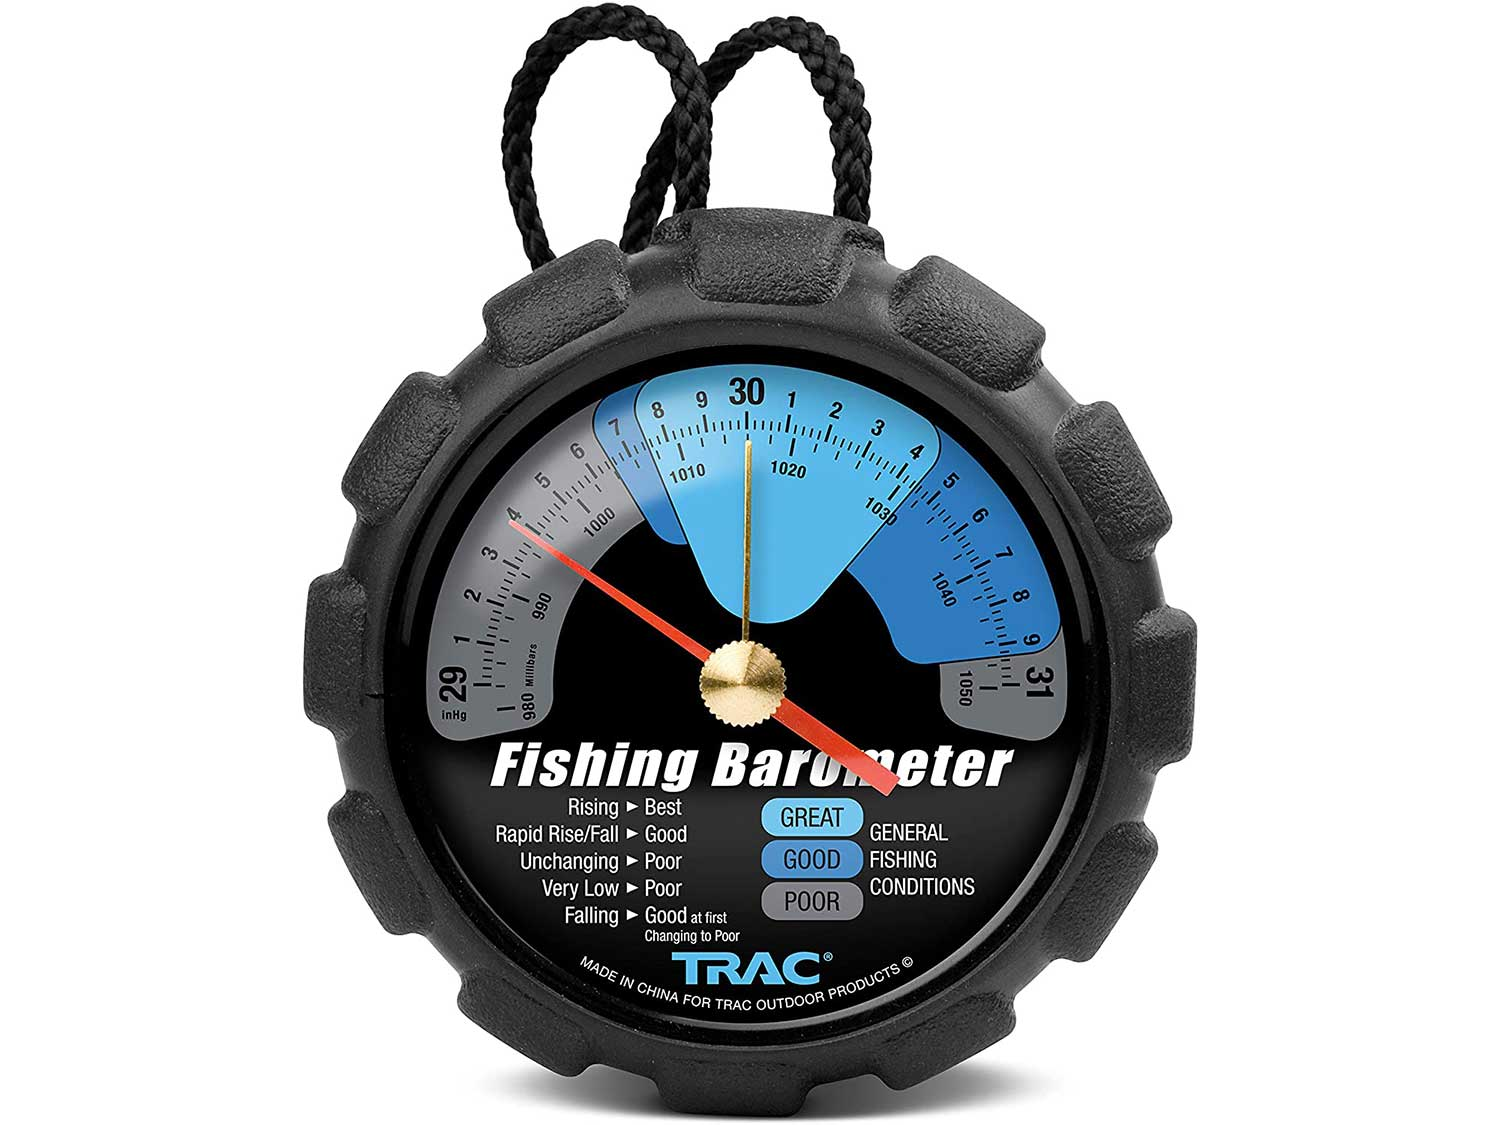 Trac Outdoors Fishing Barometer